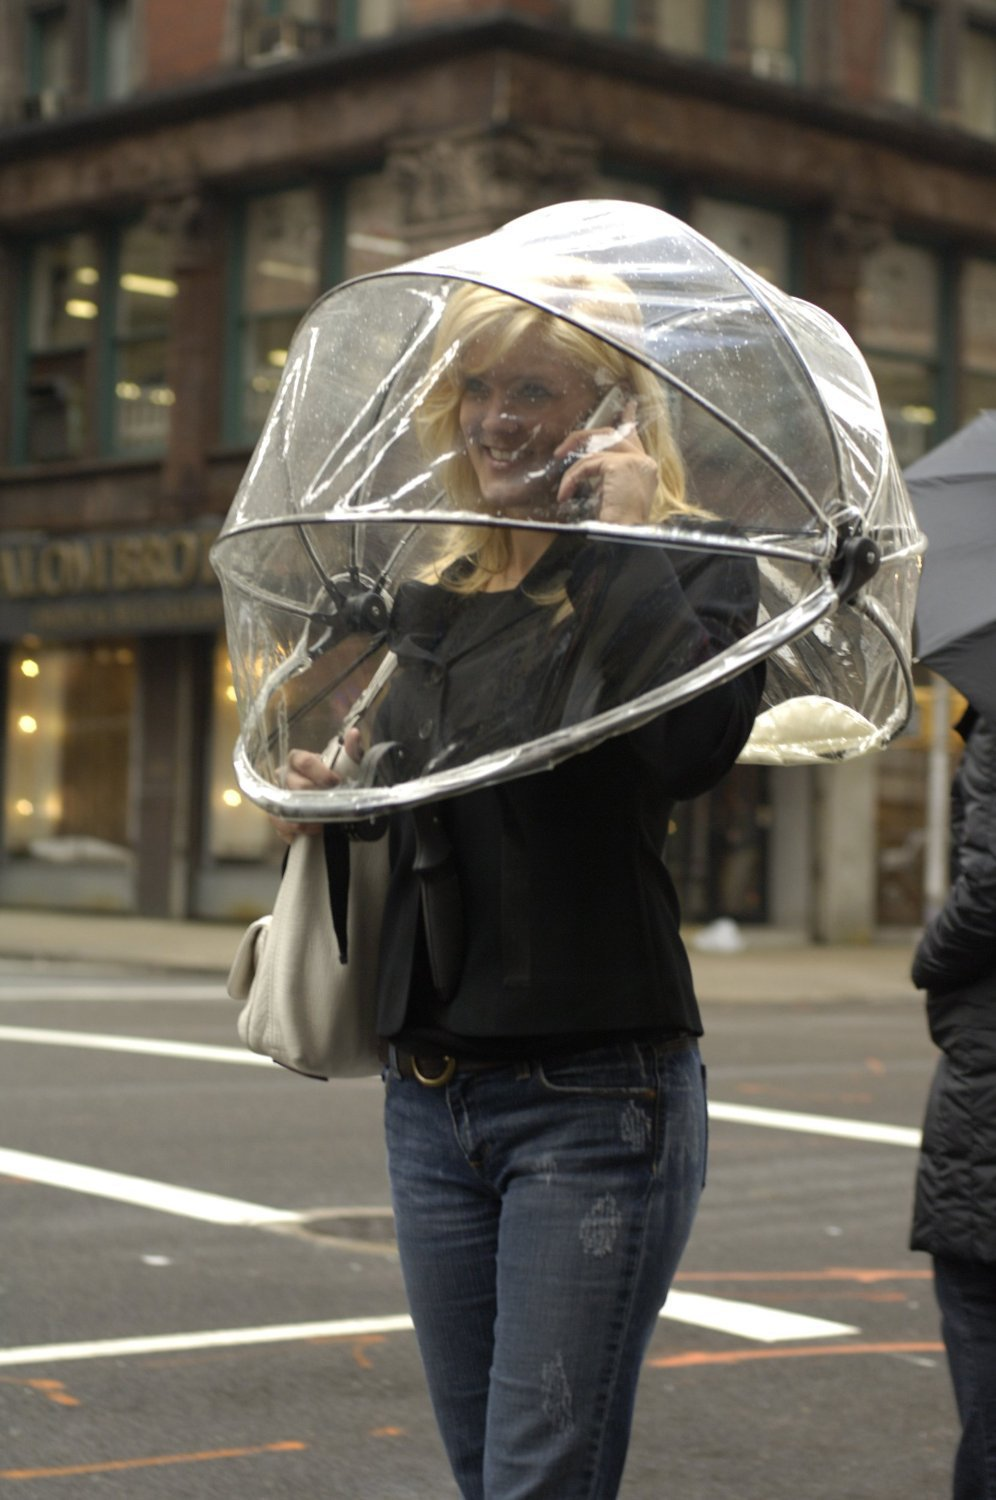 Amazon.com: Nubrella Hands Free Umbrella: Clothing